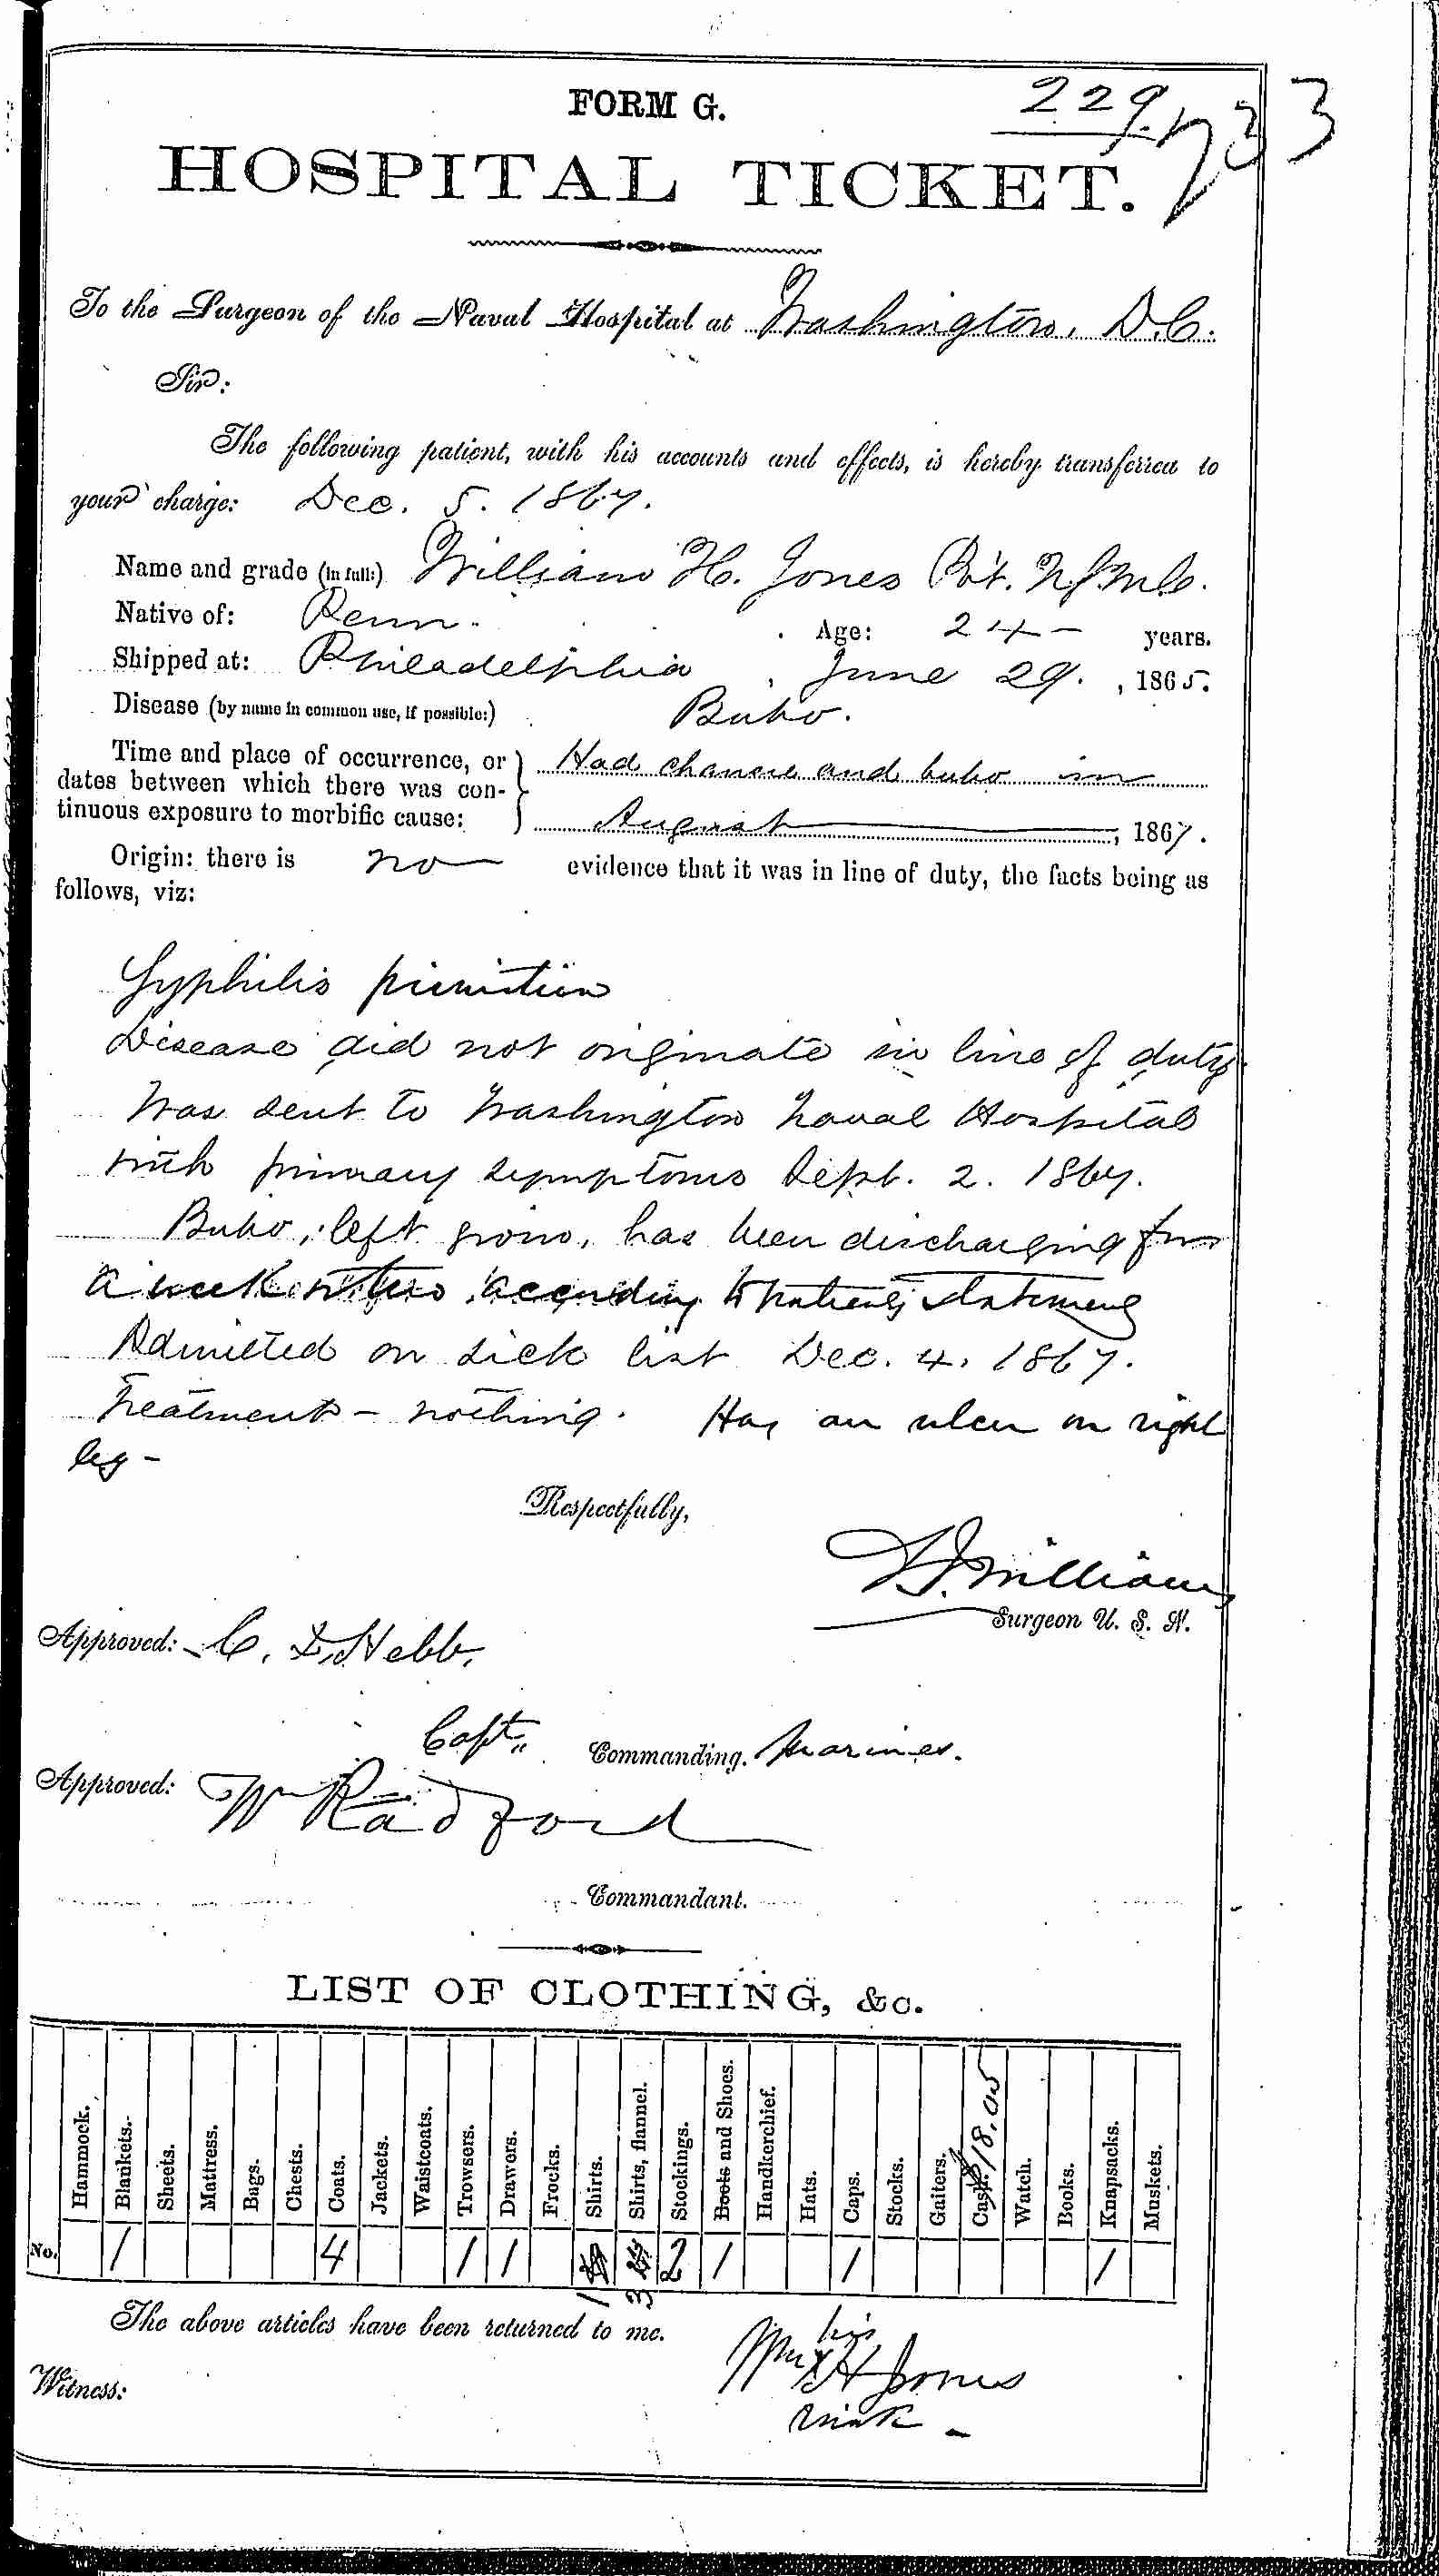 Entry for William H. Jones (page 1 of 2) in the log Hospital Tickets and Case Papers - Naval Hospital - Washington, D.C. - 1866-68